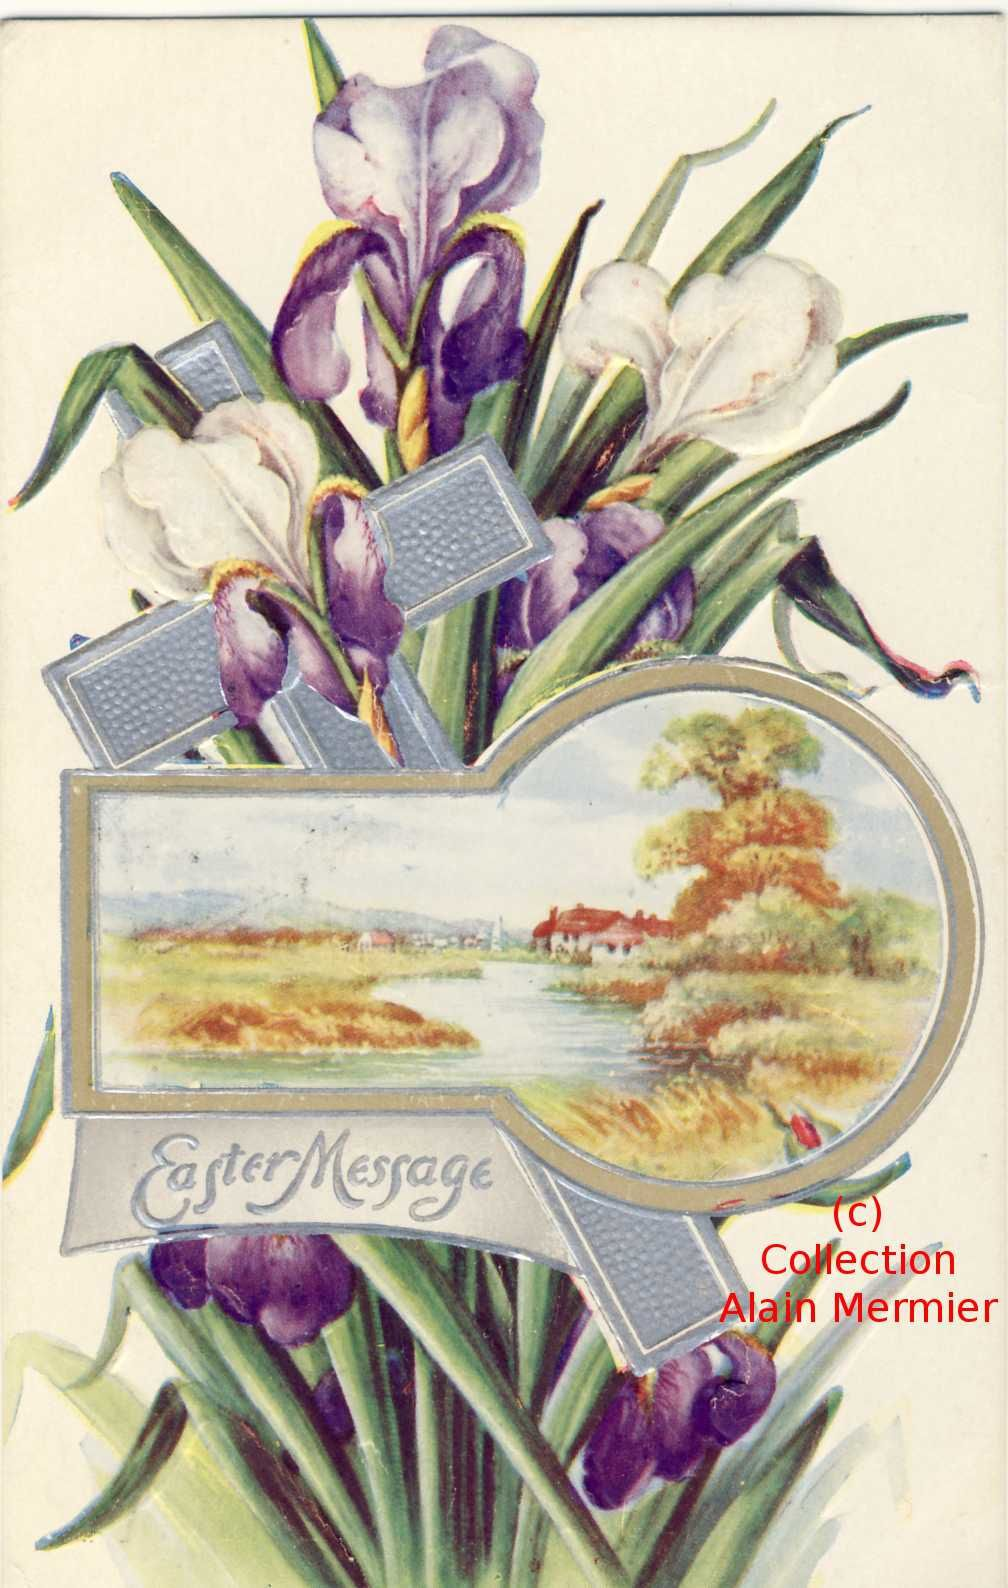 Iris -512- Easter message.  U.S.A. 1911